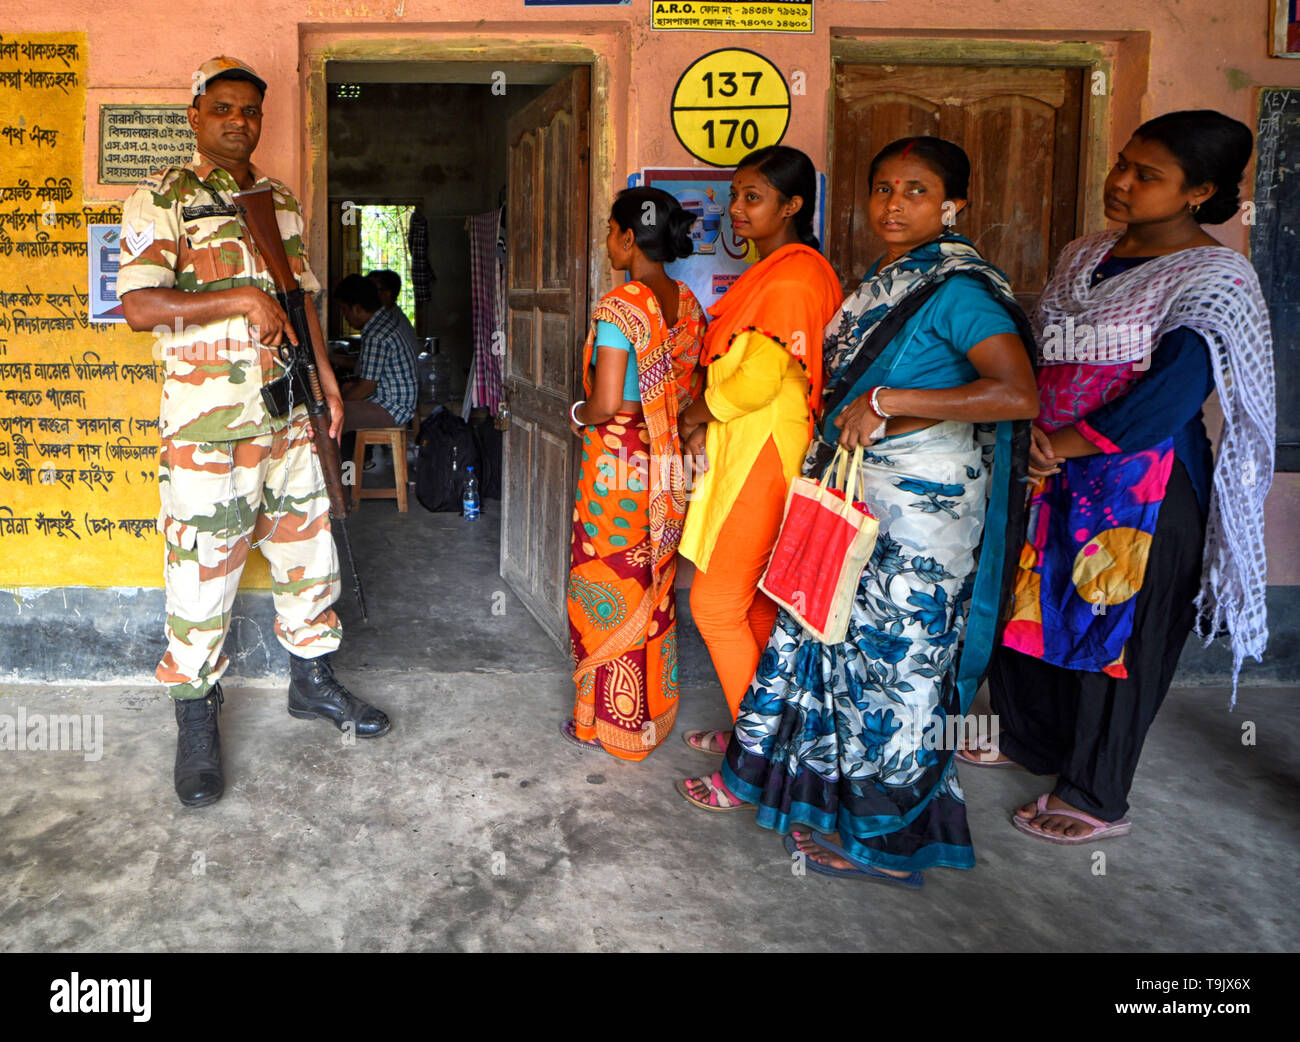 A CISF (Central Industrial Security Force) Jawan seen standing on guard at a polling station during the 7th Phase (Final Phase) of General Elections in Baruipur, west Bengal. Voting has begun for the 7th phase (final phase) elections in Baruipur, West Bengal. - Stock Image